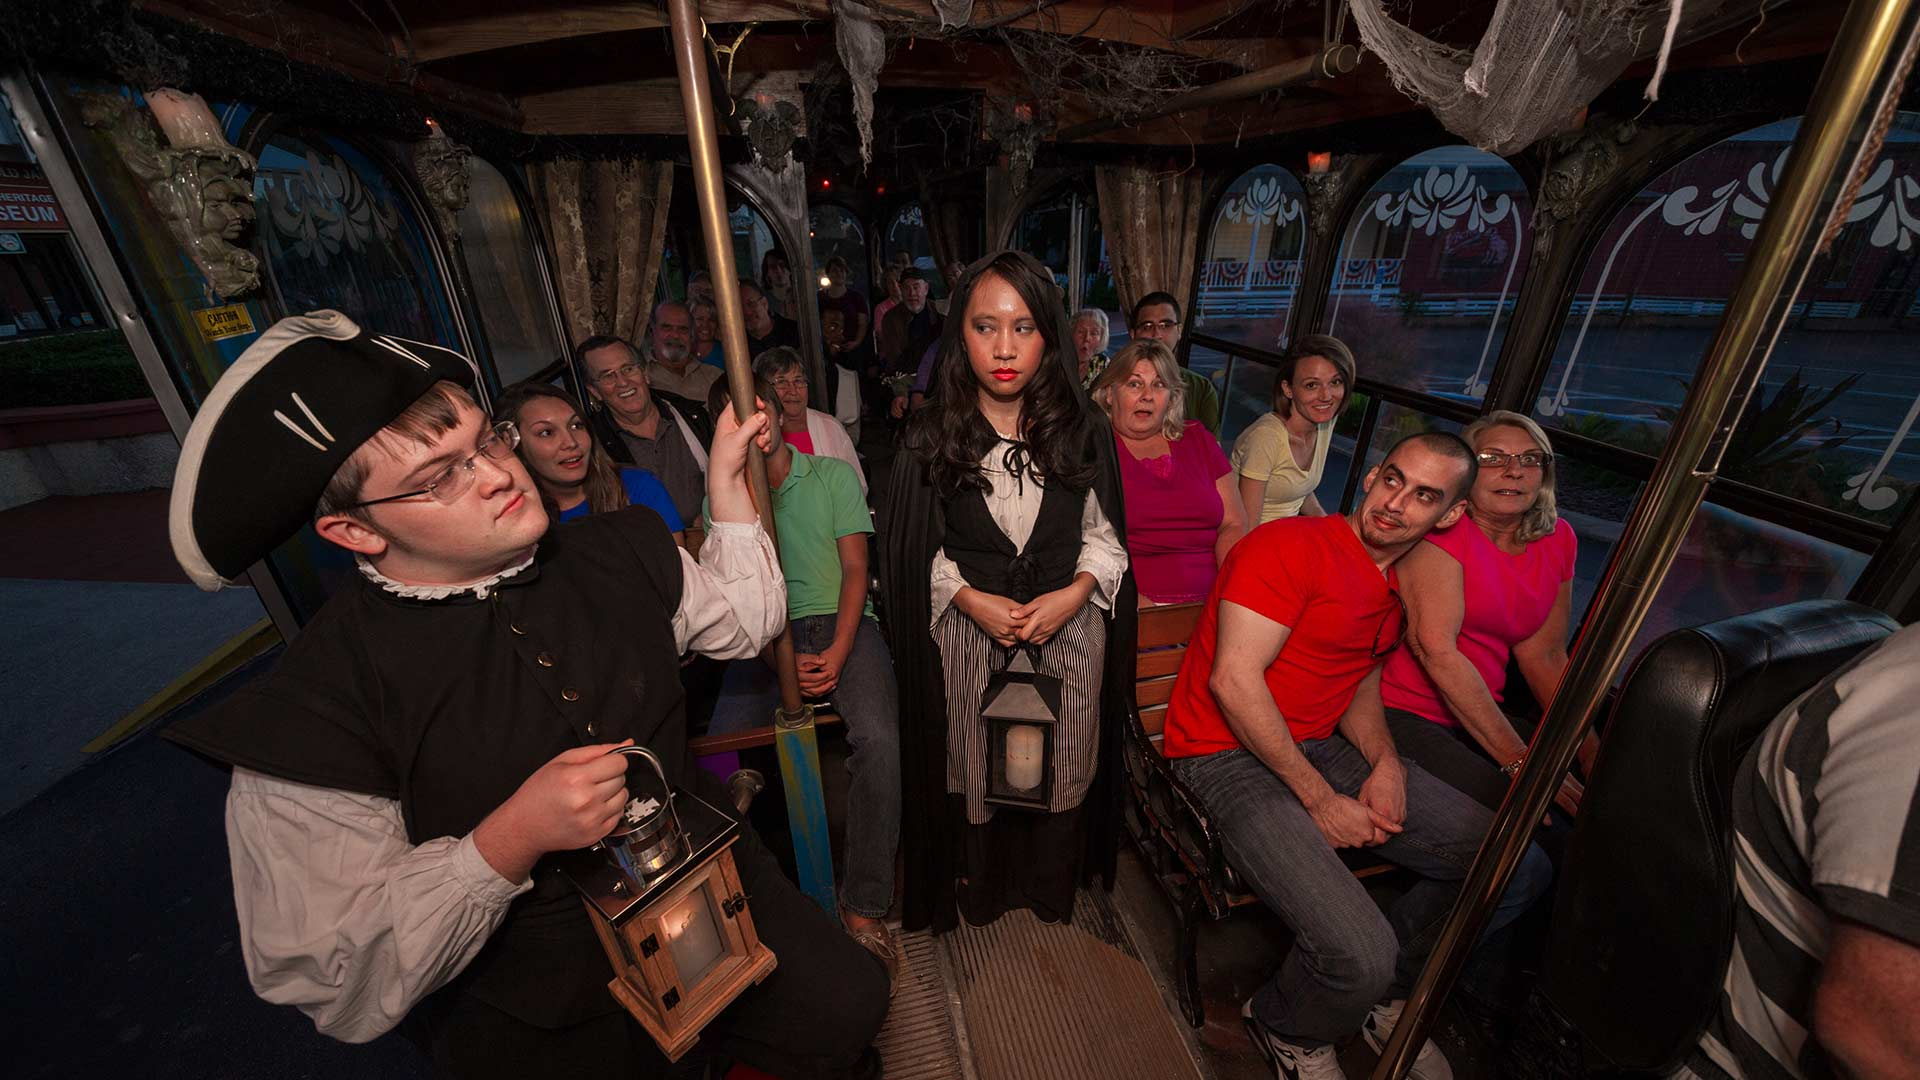 st augustine haunted tour trolley interior with guests and ghost hosts inside